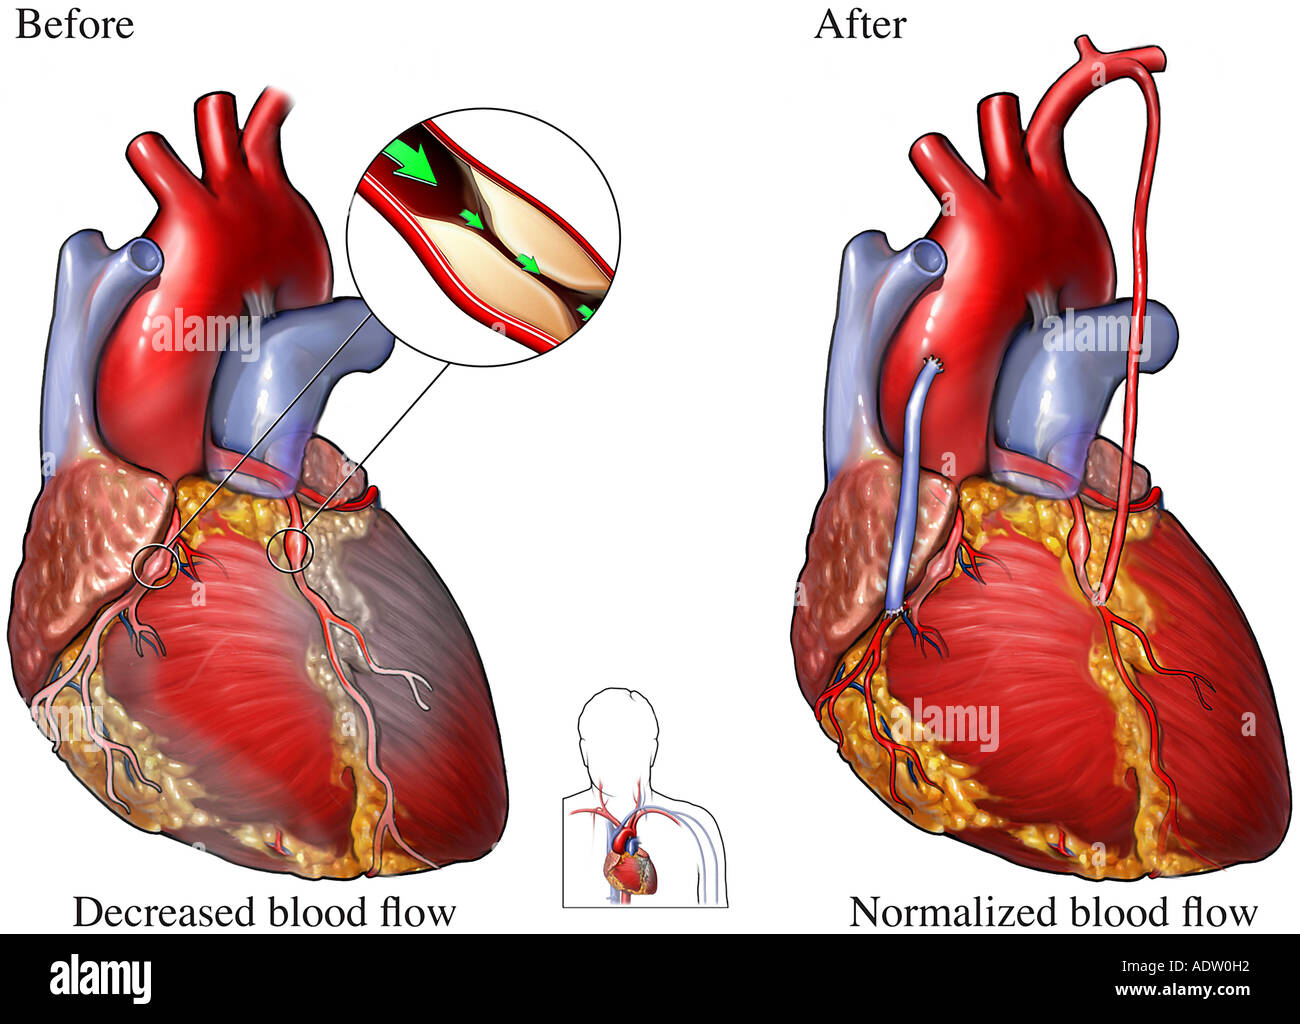 Coronary Artery Disease Heart Bypass Surgery Stock Photo